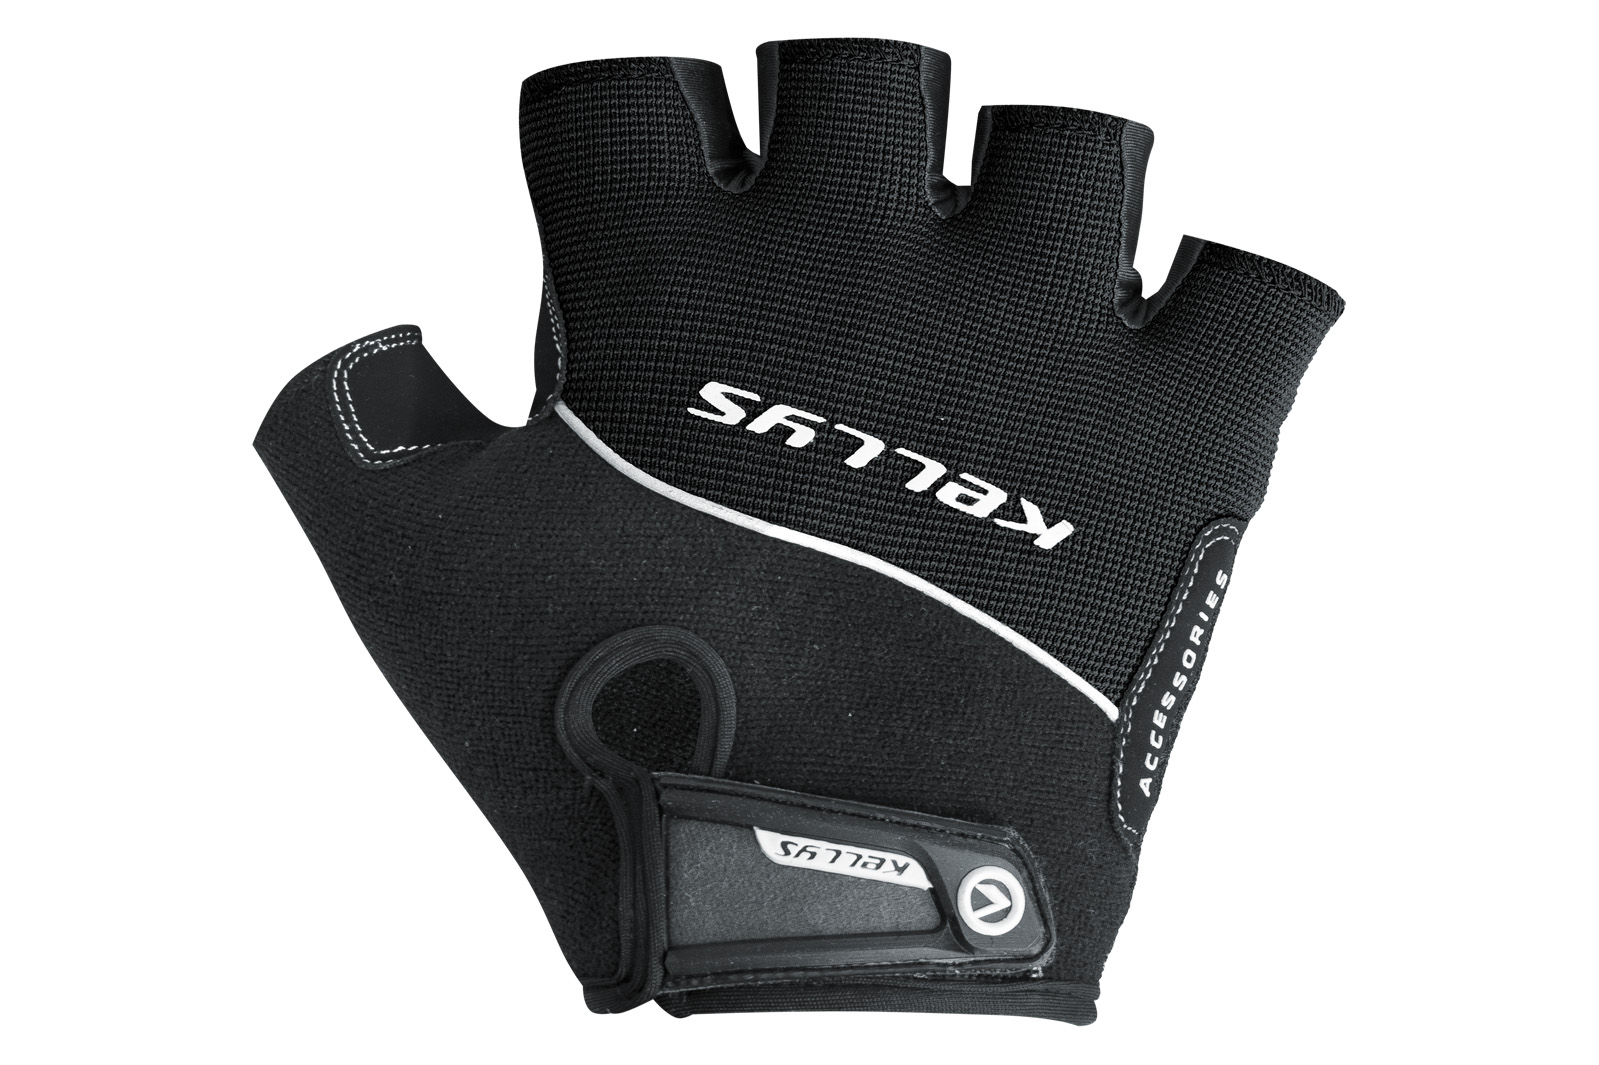 Handschuhe RACE black M NEW - Handschuhe RACE black M NEW